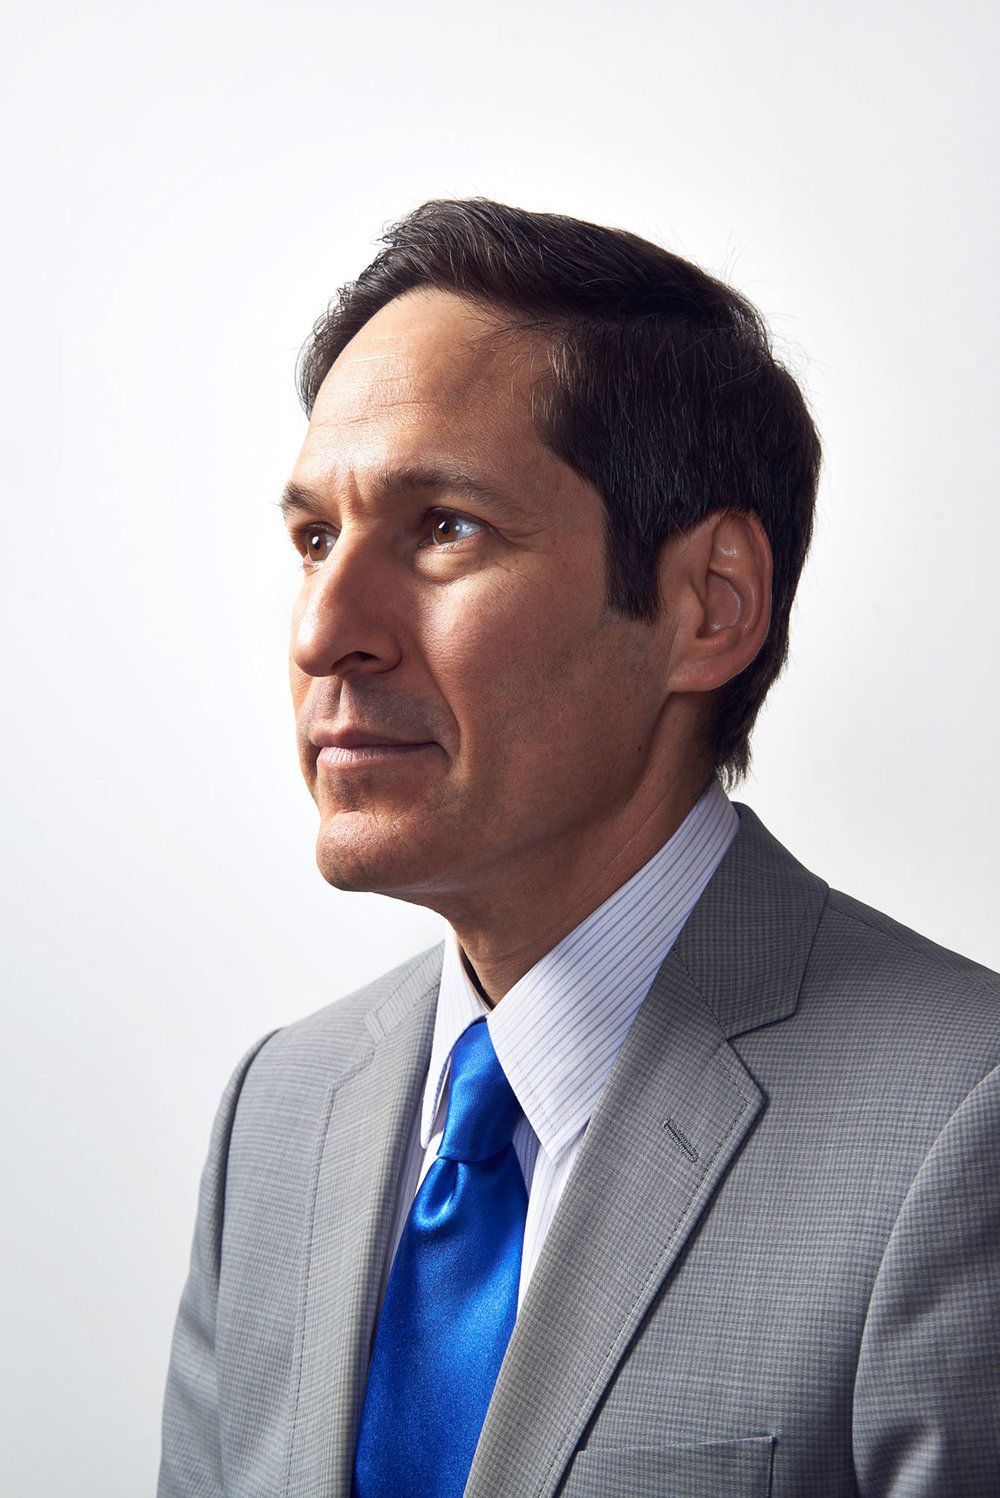 Dr. Tom Frieden, former CDC Director, Atlanta, Georgia, 2014